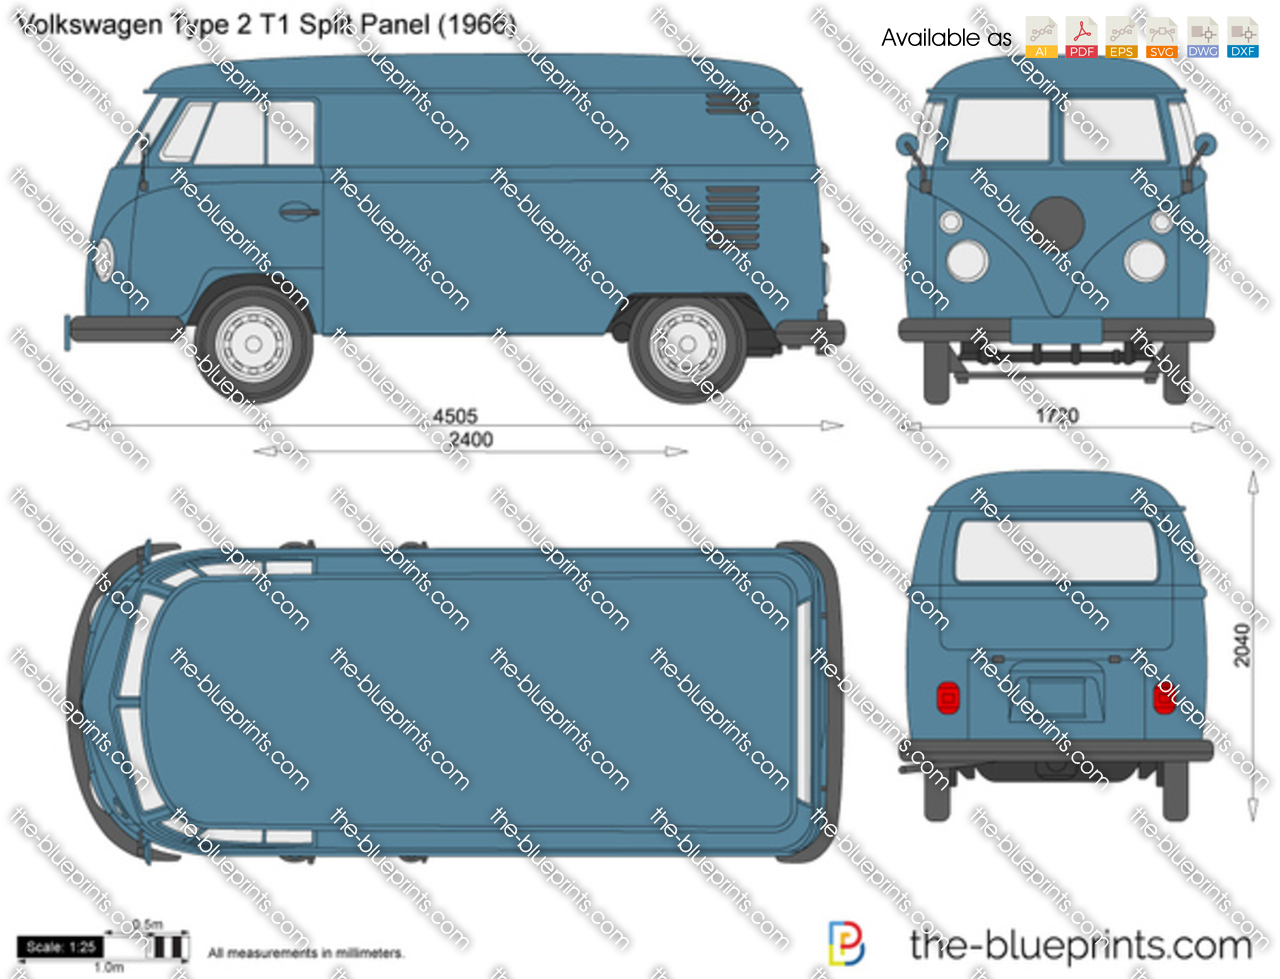 Volkswagen Type 2 T1 Split Panel 1950